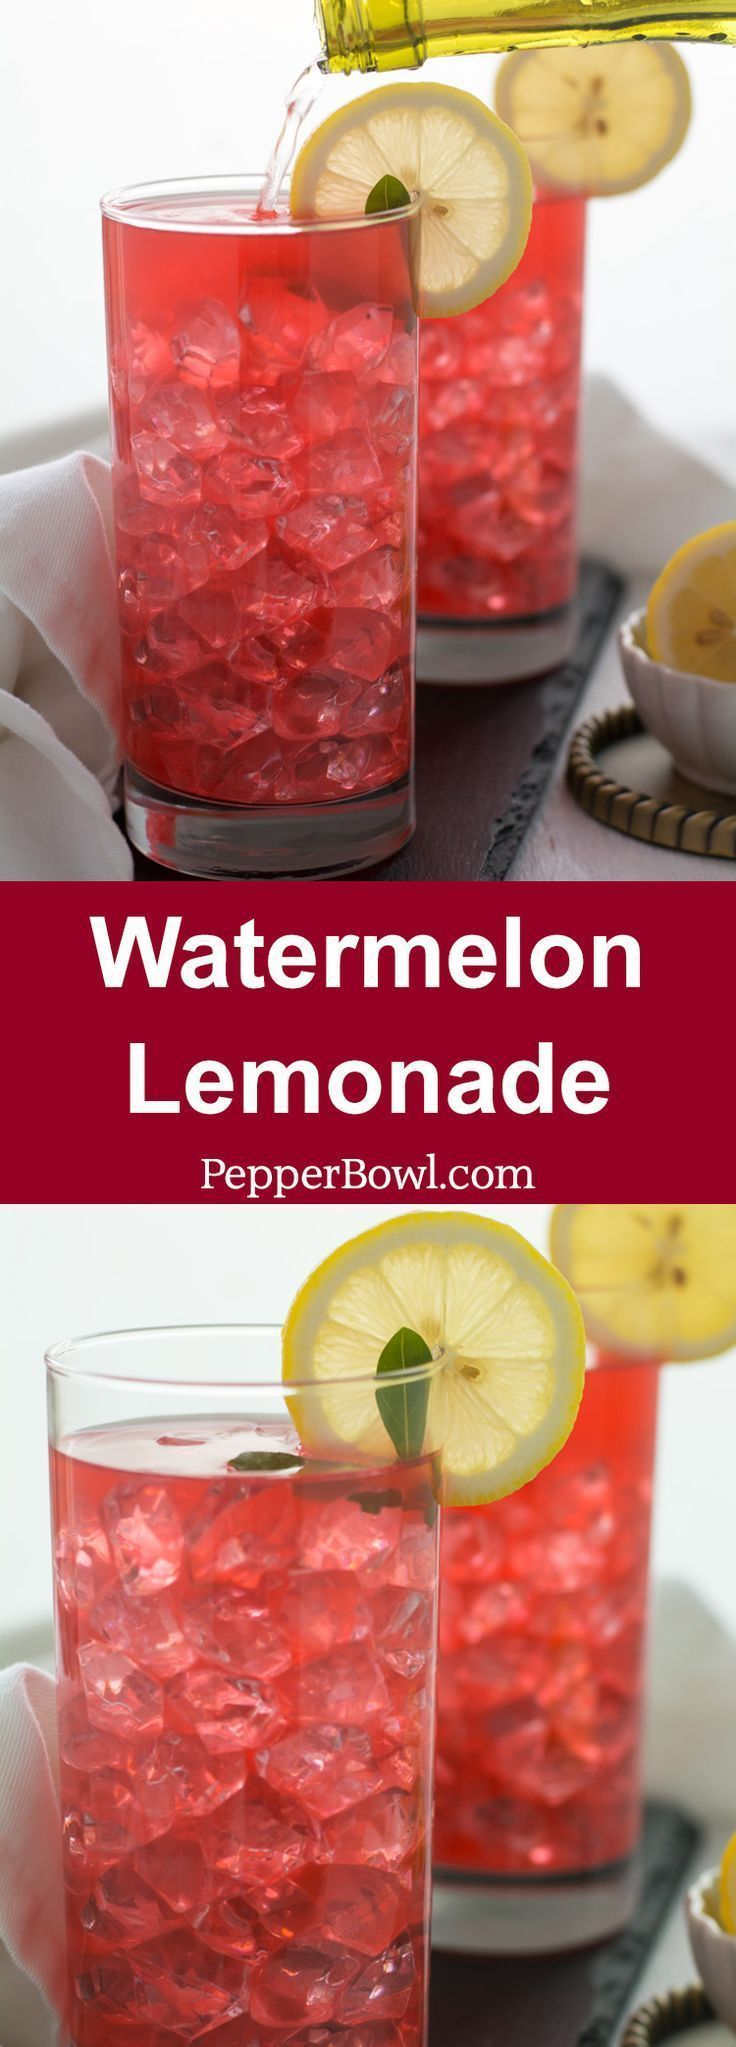 Watermelon Lemonade Recipe, super simple, great for parties and large gatherings. Very healthy and refreshing drink. (summertime drinks)